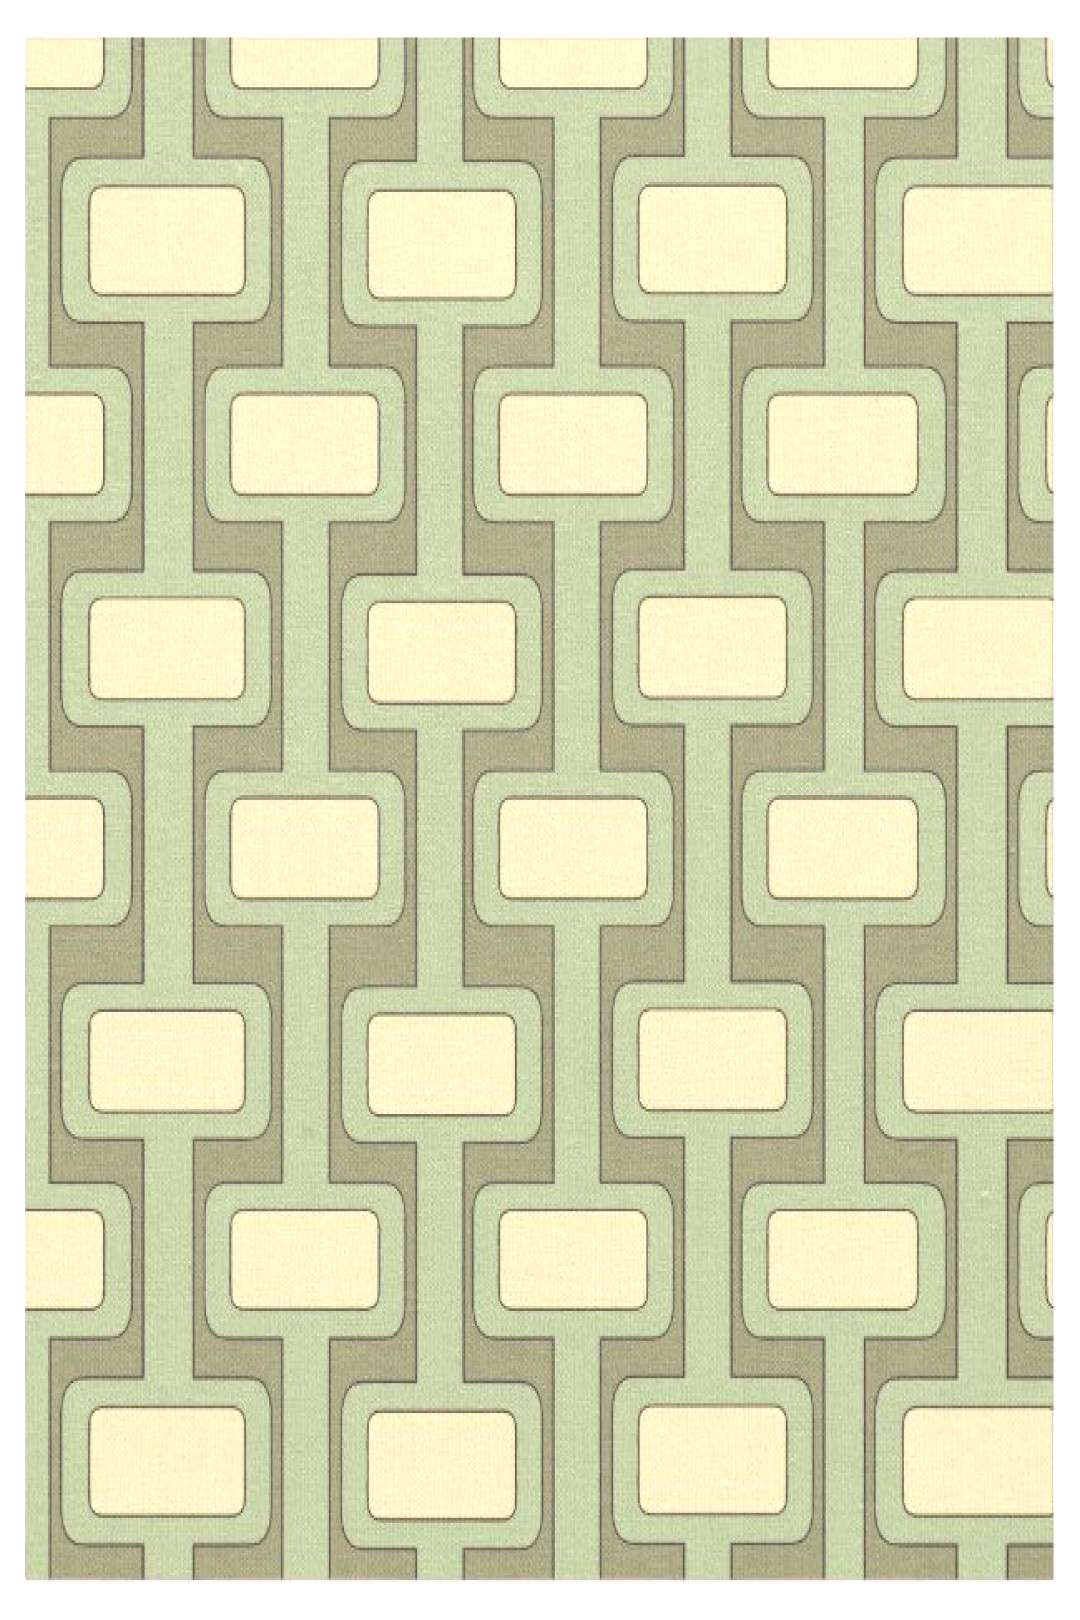 Lock n' Key Lime Fabric Crazy about those retro patterns. 60s and 70s wallpaper isn't it the best?